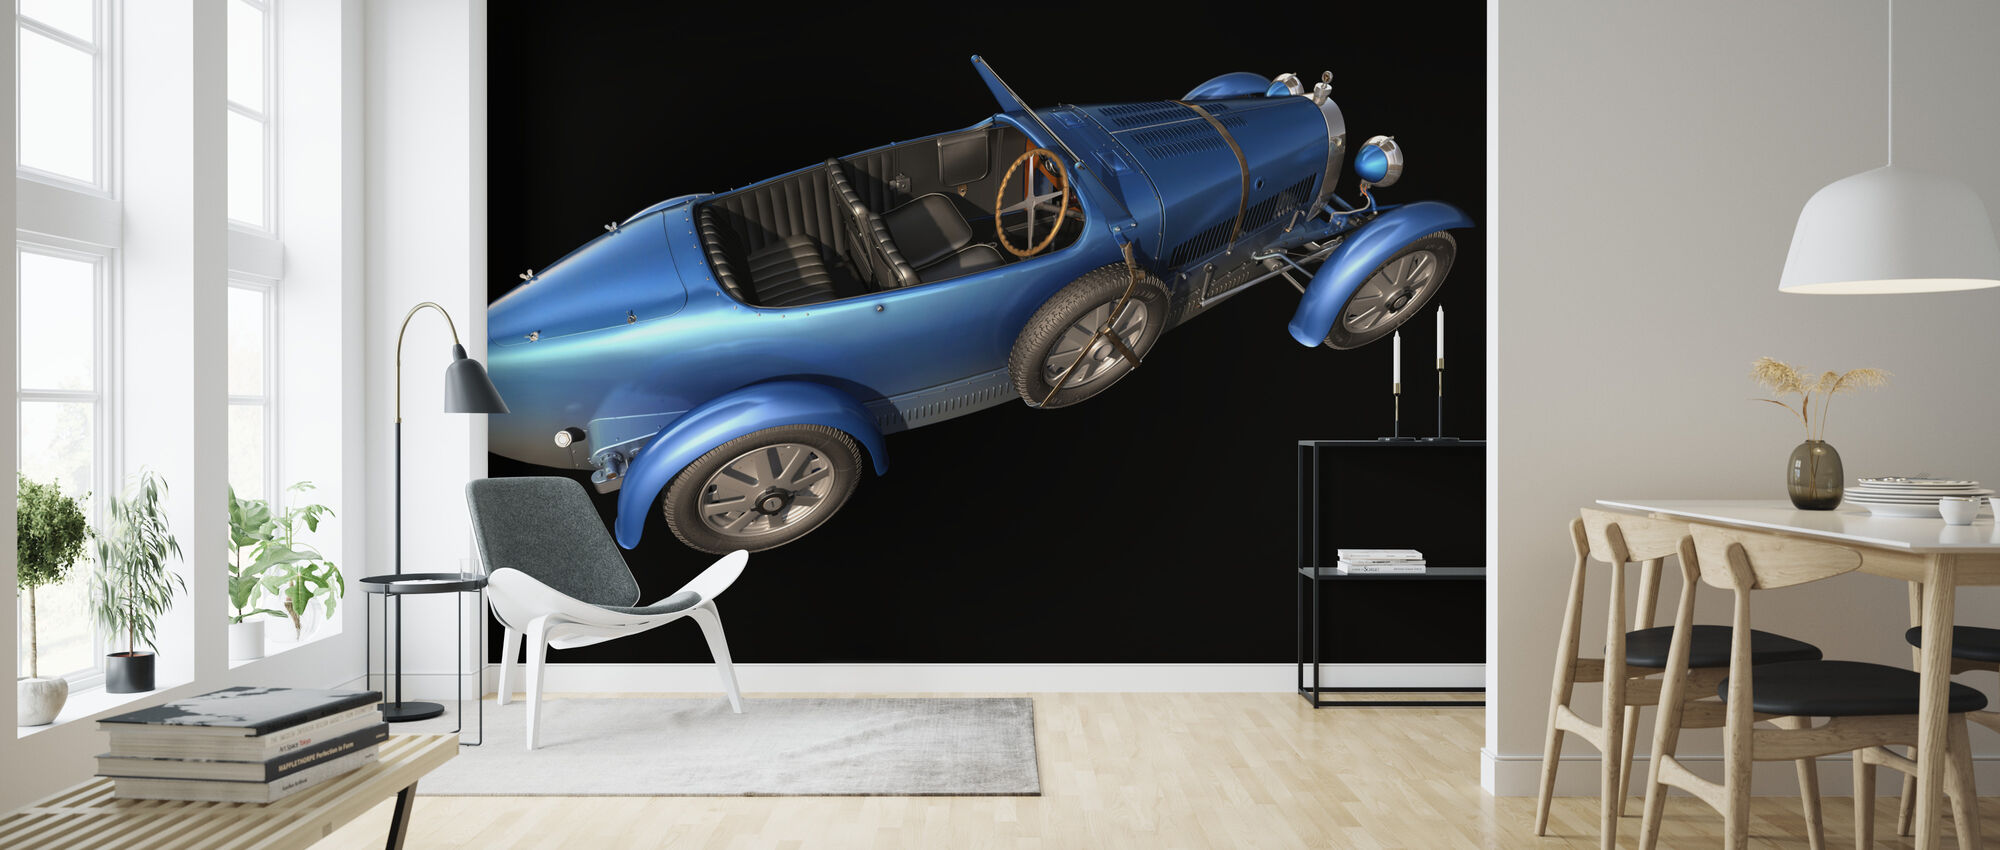 French car from 1927 - Wallpaper - Living Room